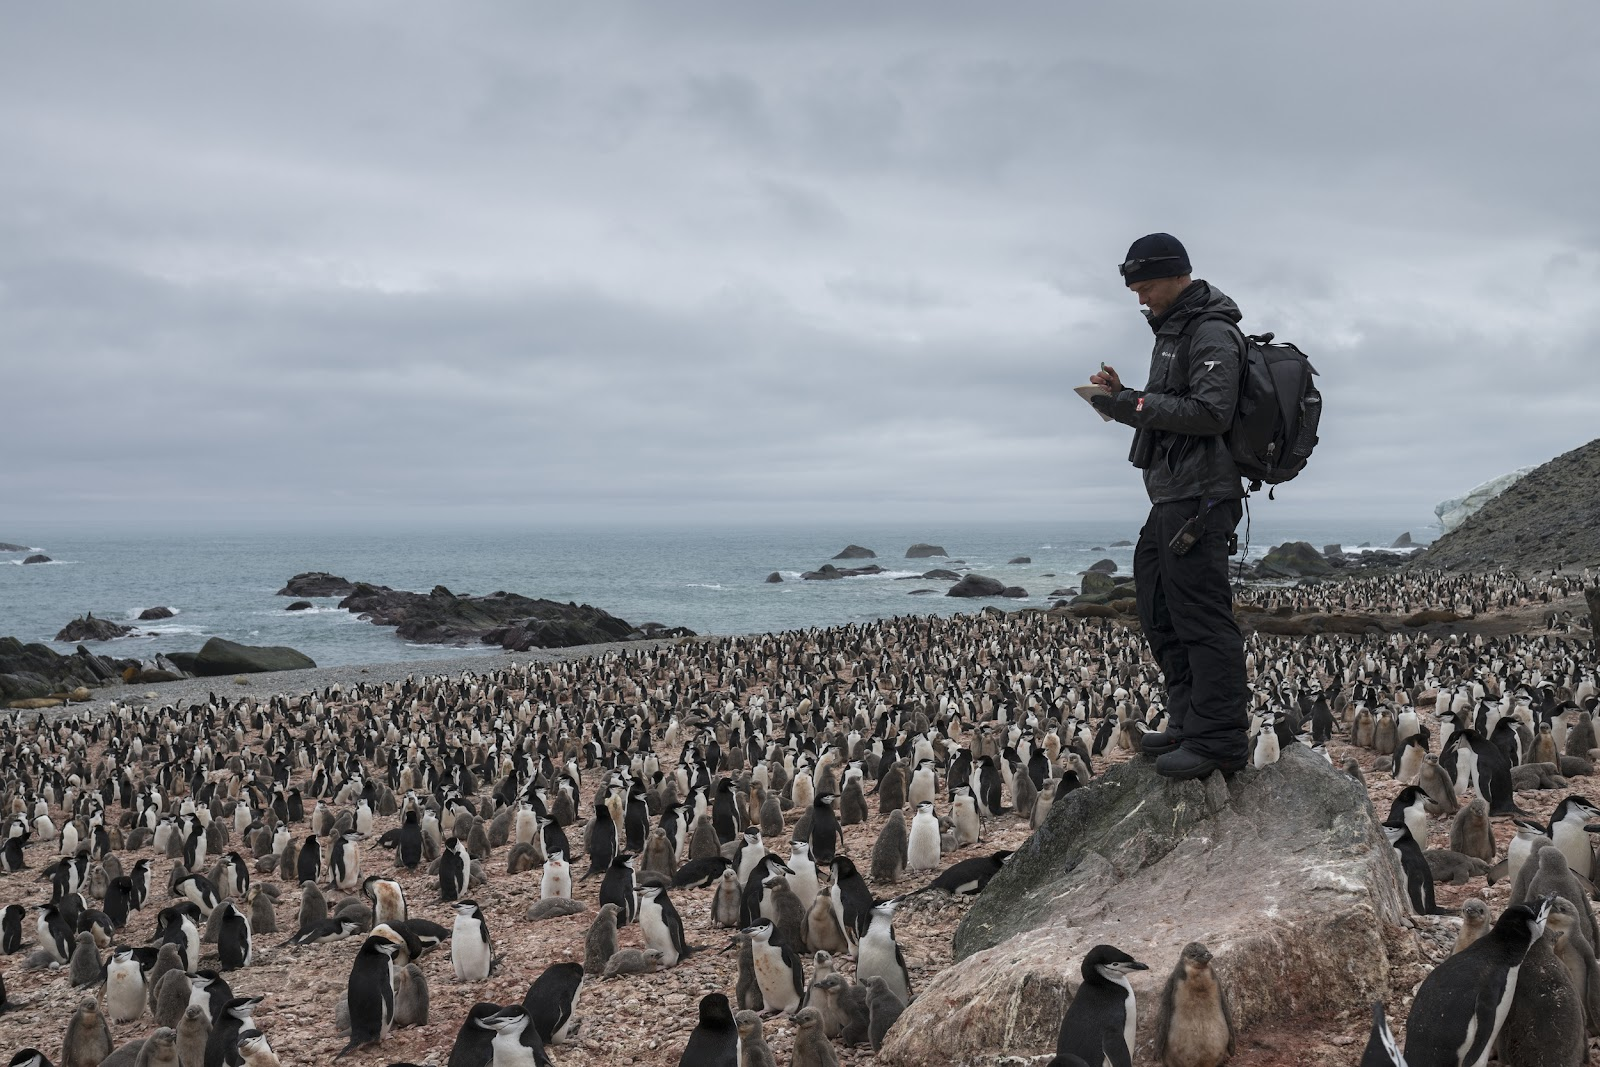 Counting penguins, Antarctic, Chinstrap penguins, Noah penguin researcher, science in the Antarctic